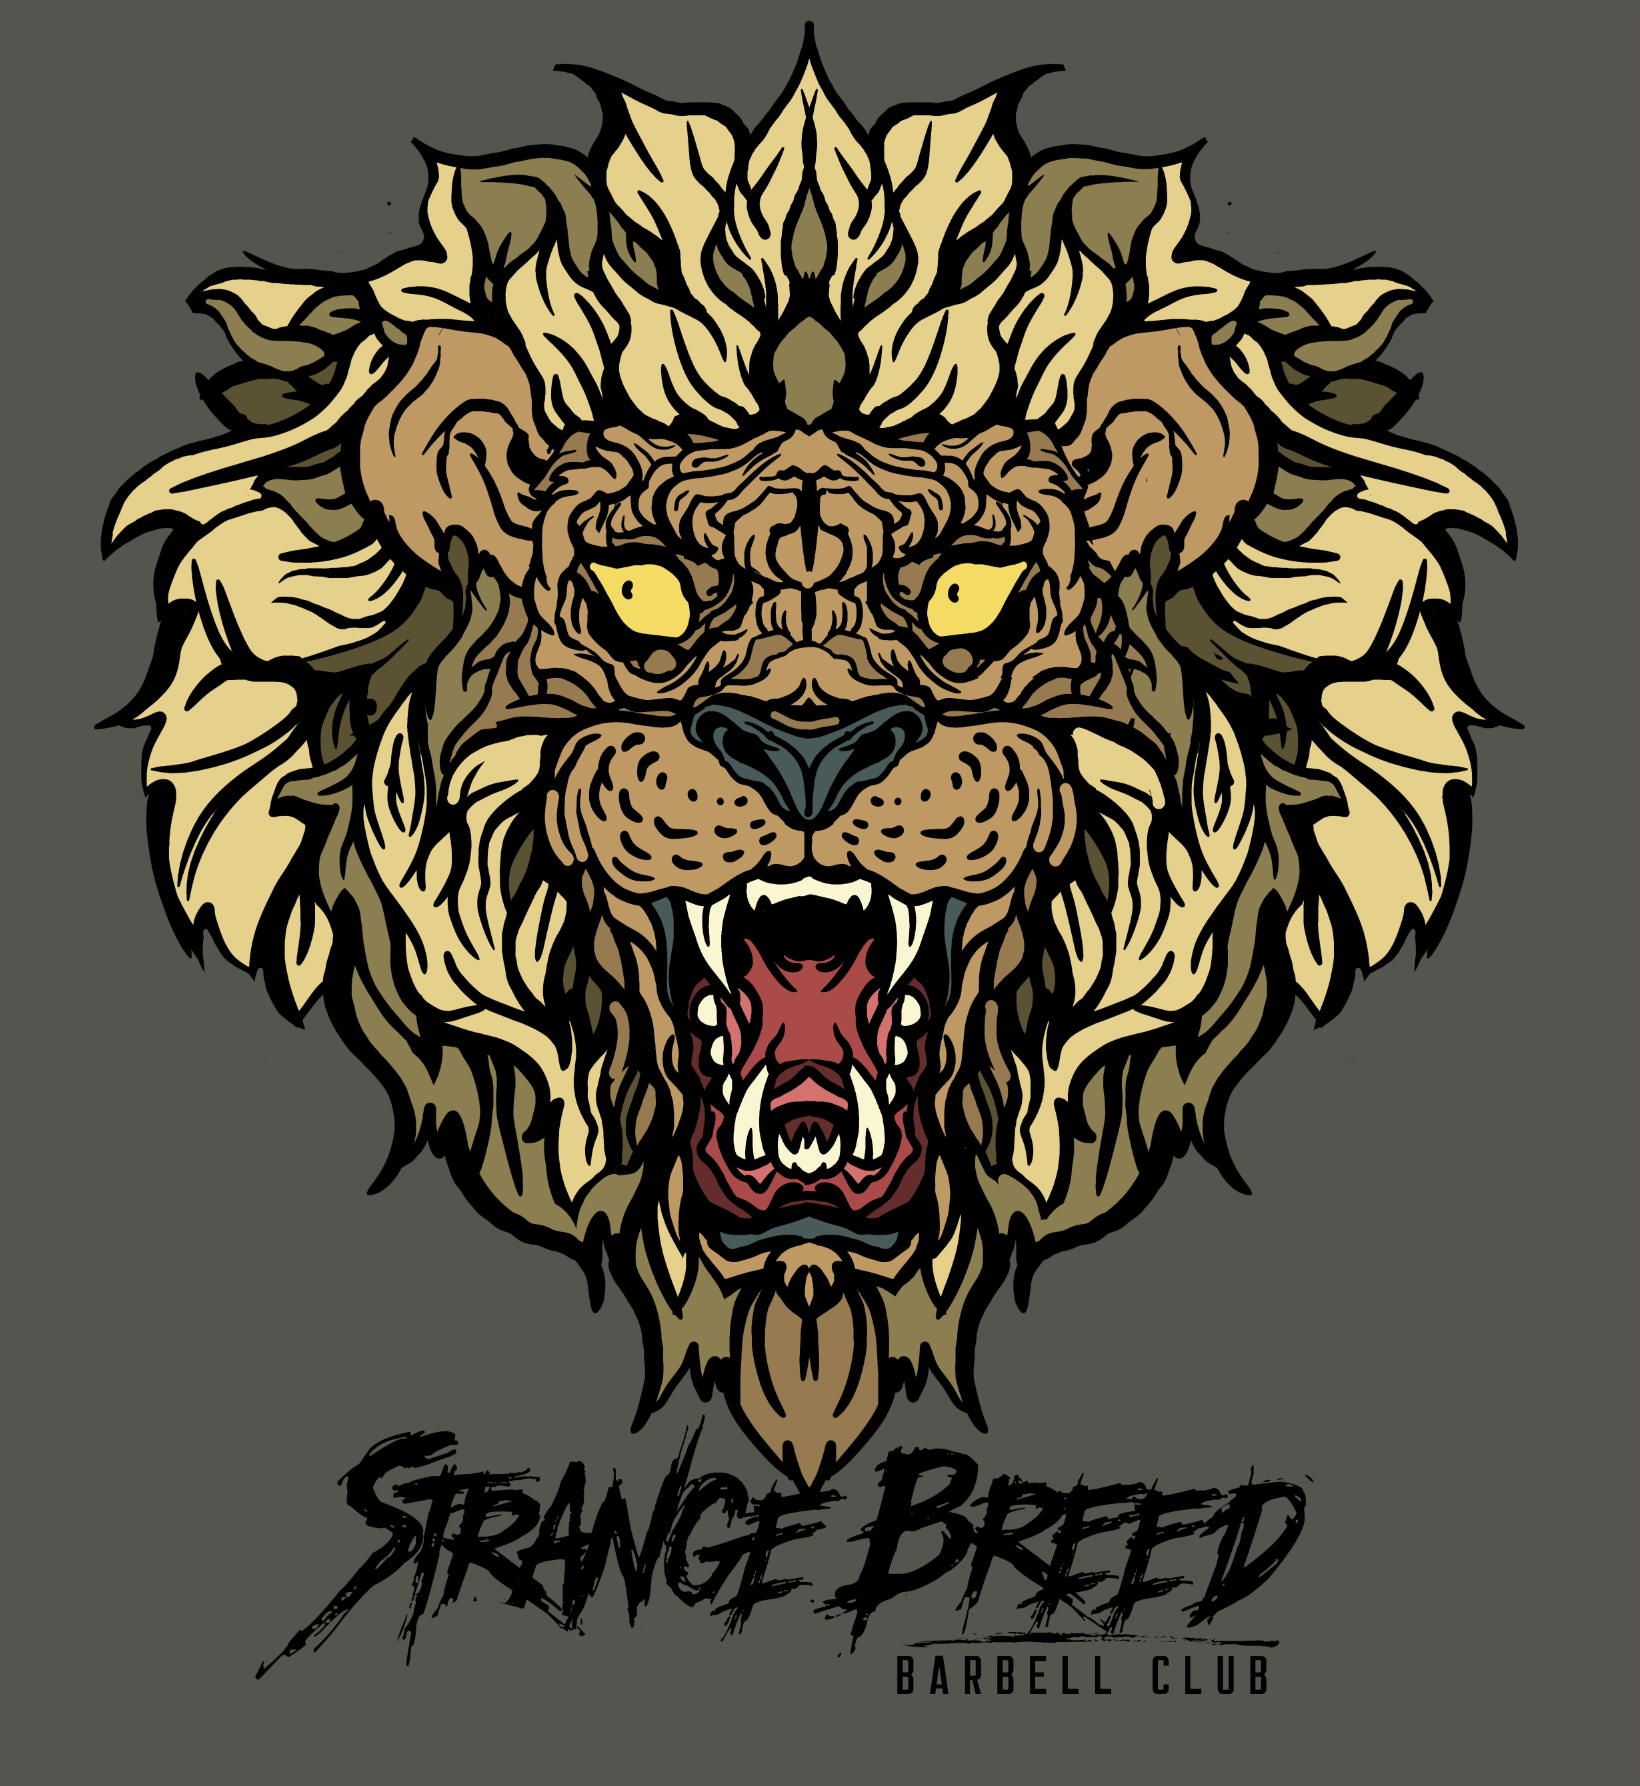 Strange Breed Barbell Club